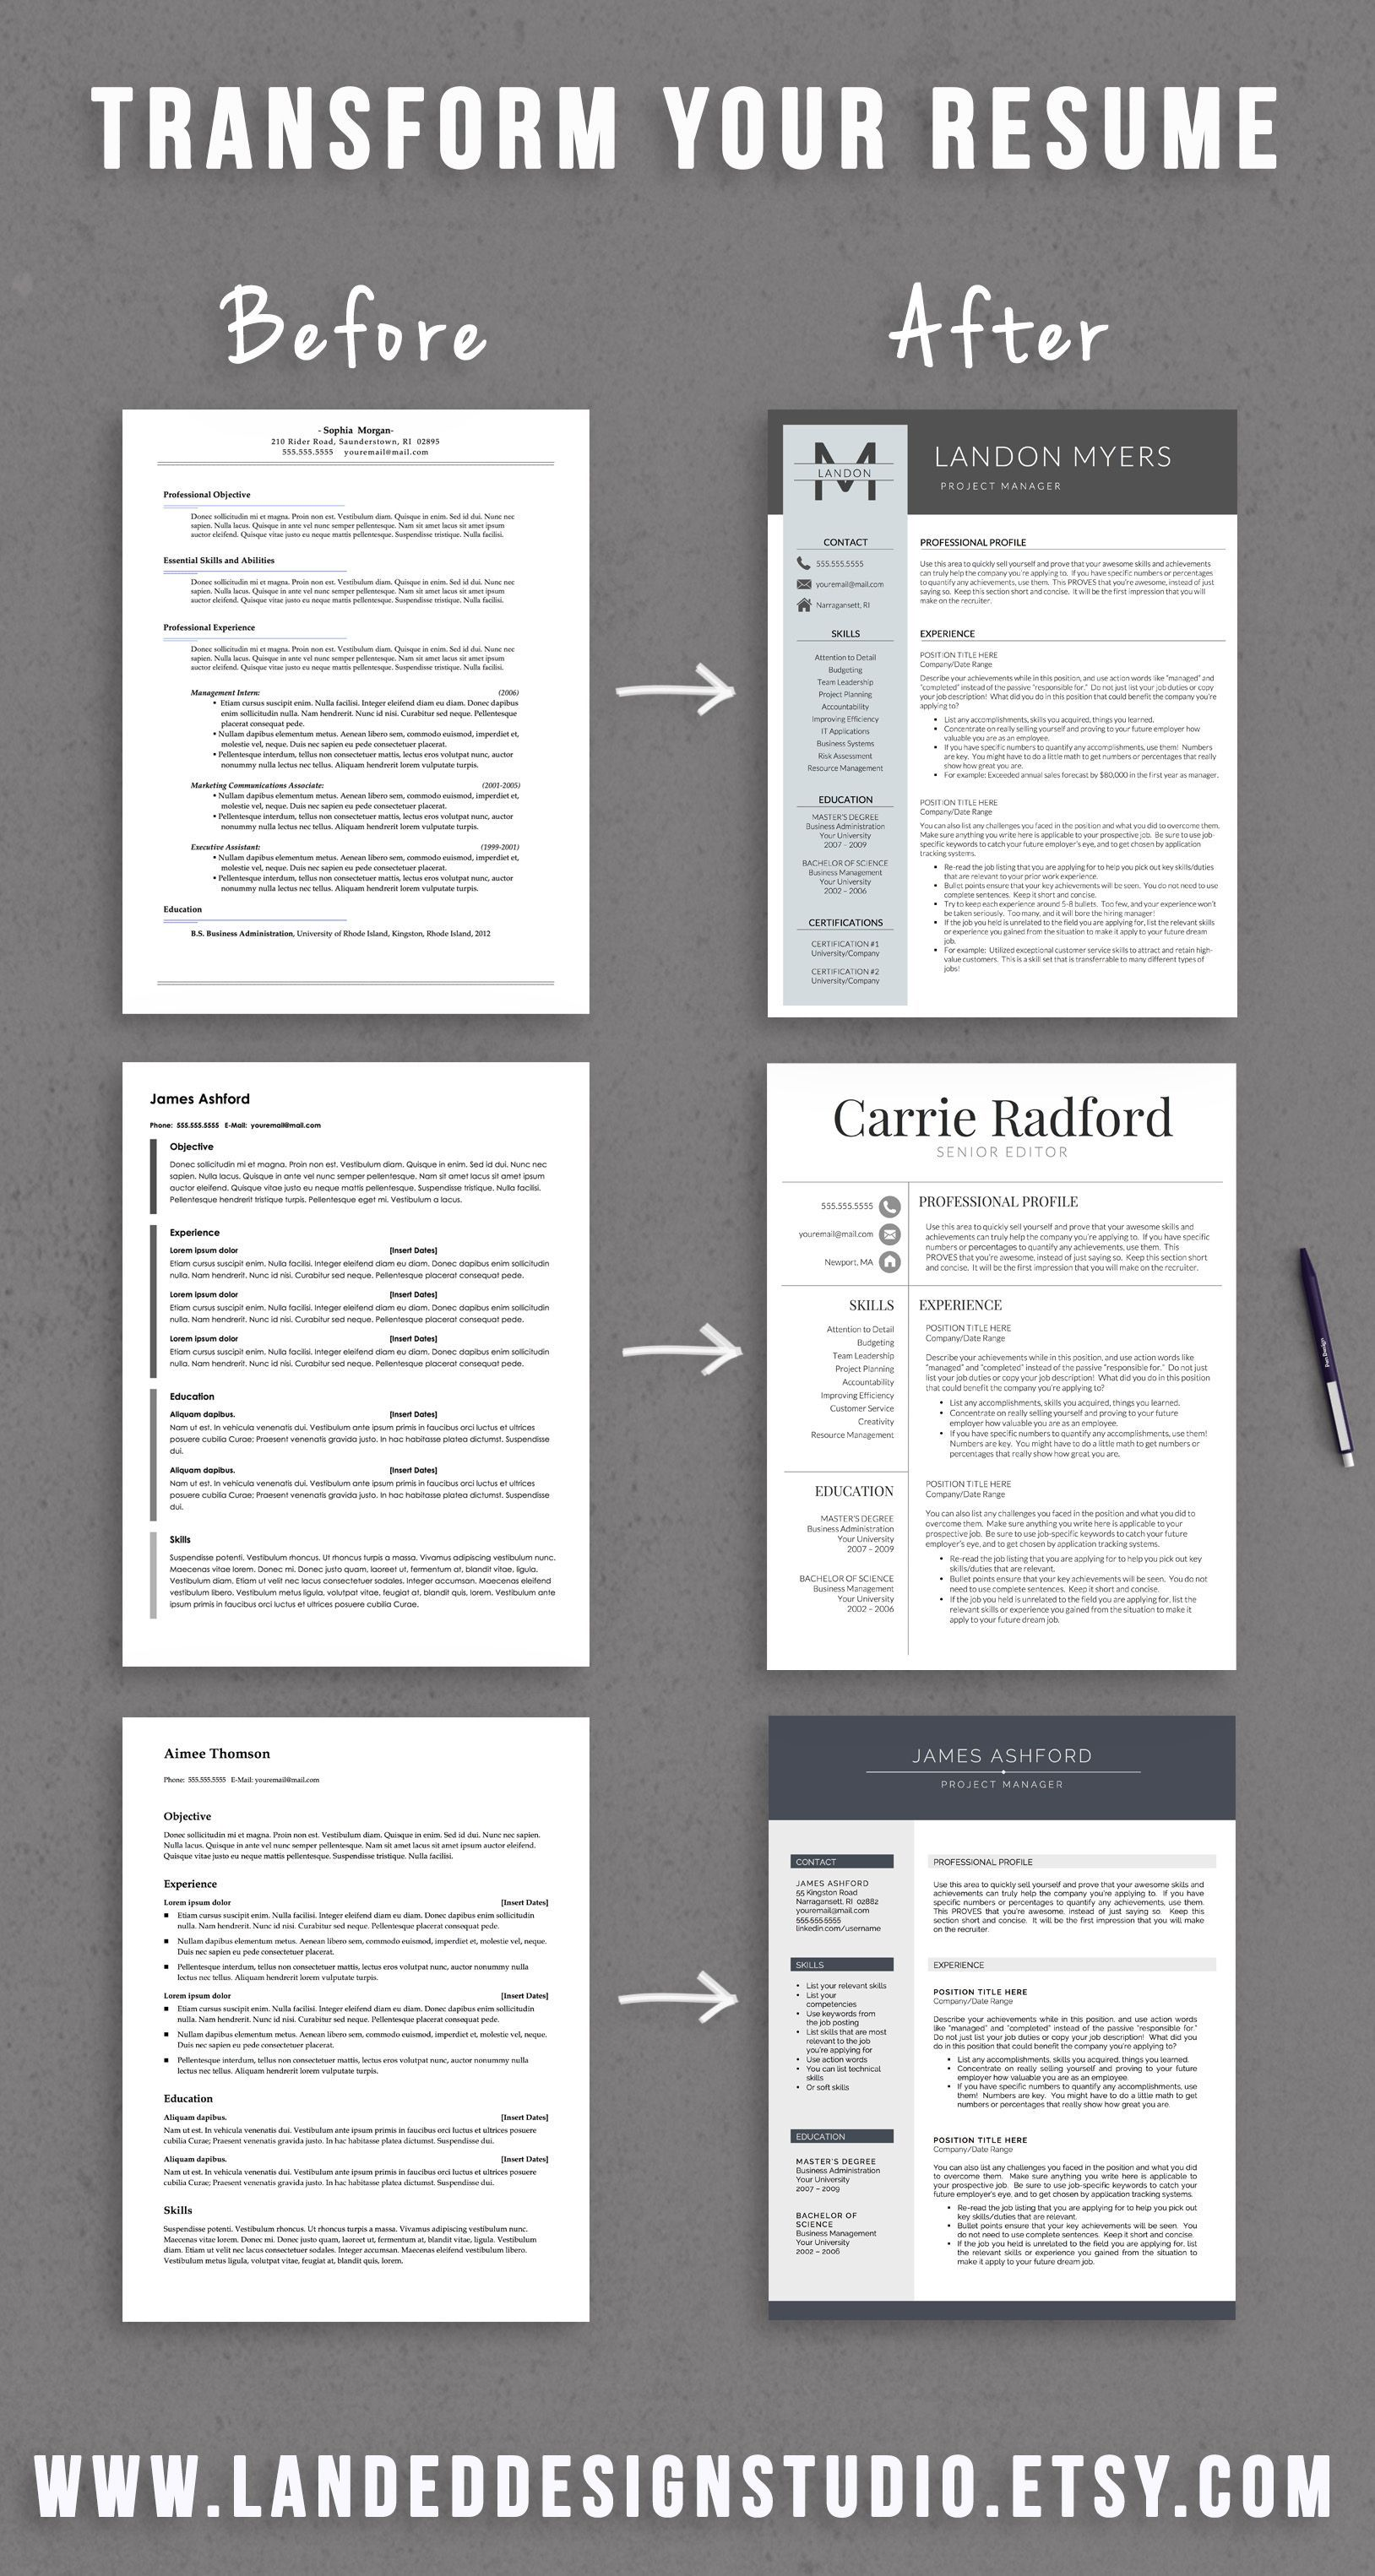 completely transform your resume for  15 with a professionally designed resume template